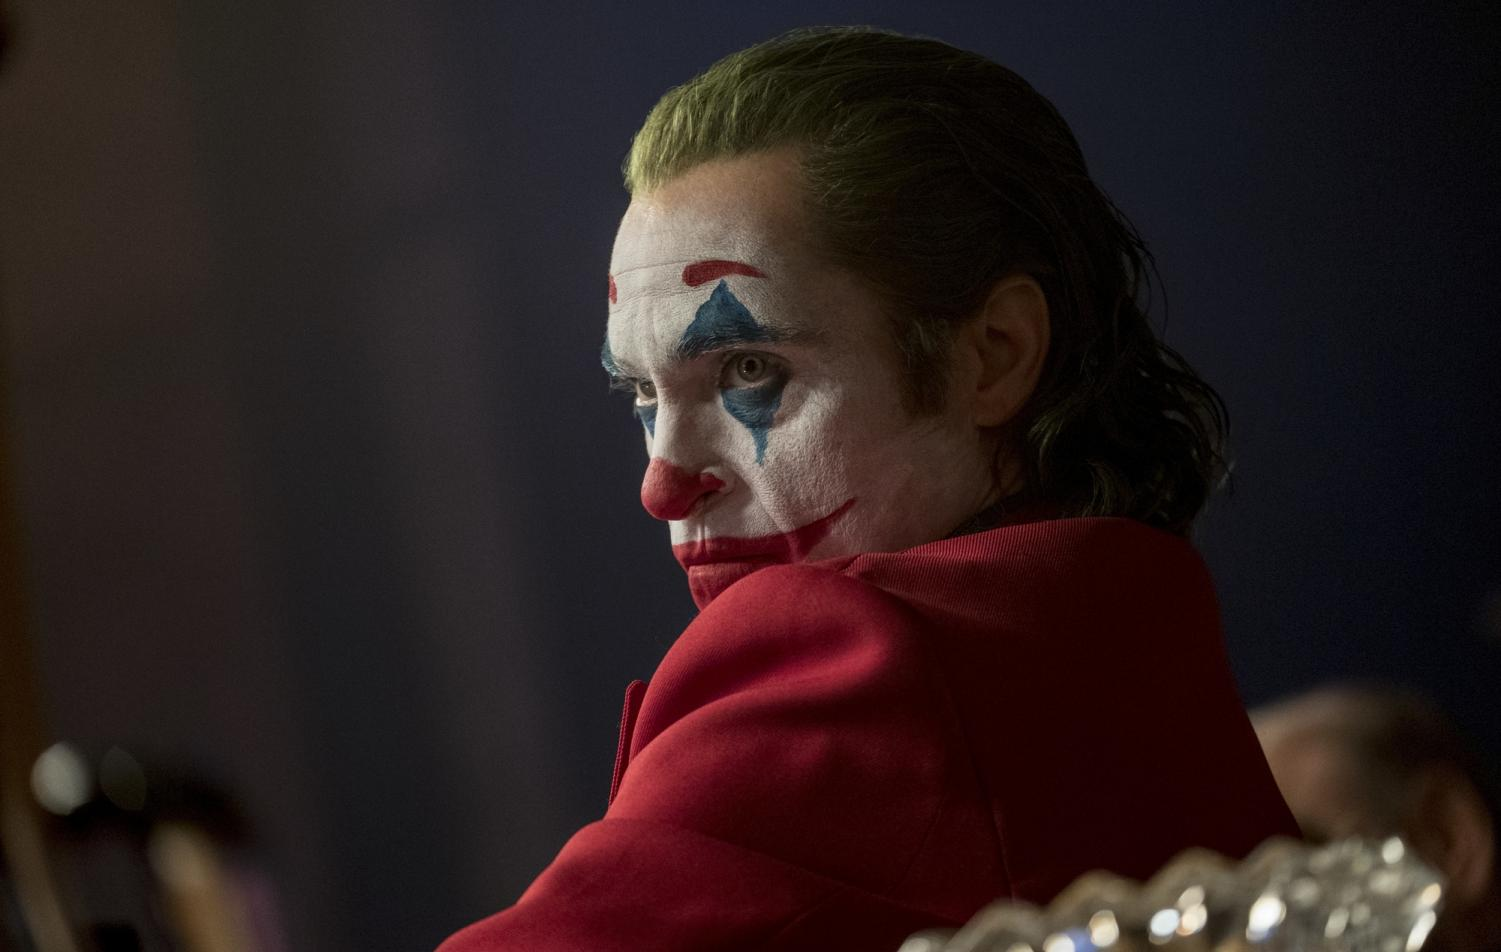 Joaquin Phoenix shines in a dark, gritty, character study about the infamous DC Comics villain